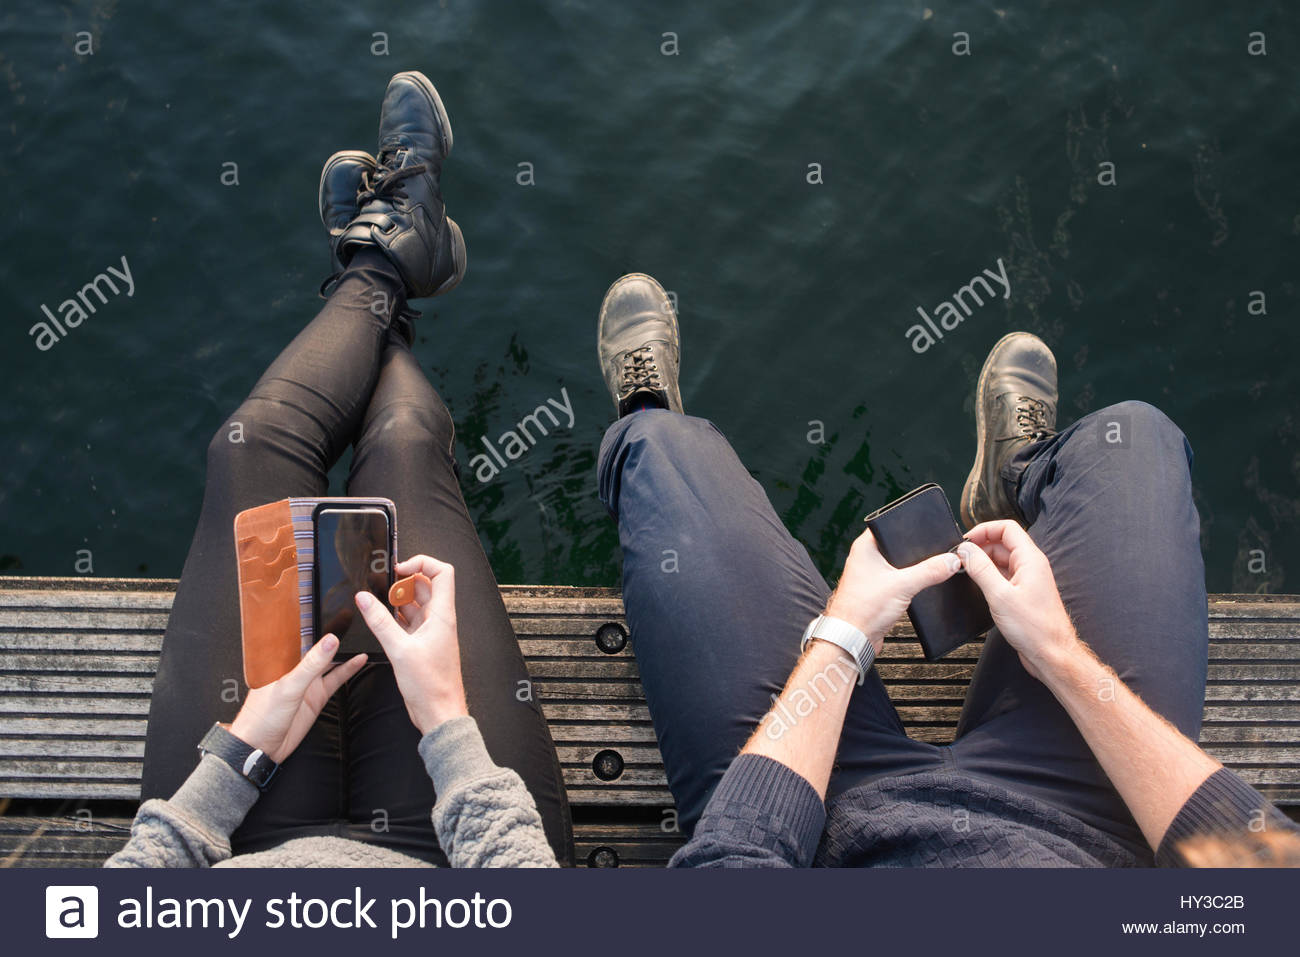 Sweden, Skane, Malmo, Overhead view of young man and woman sitting on pier with smart phones - Stock Image